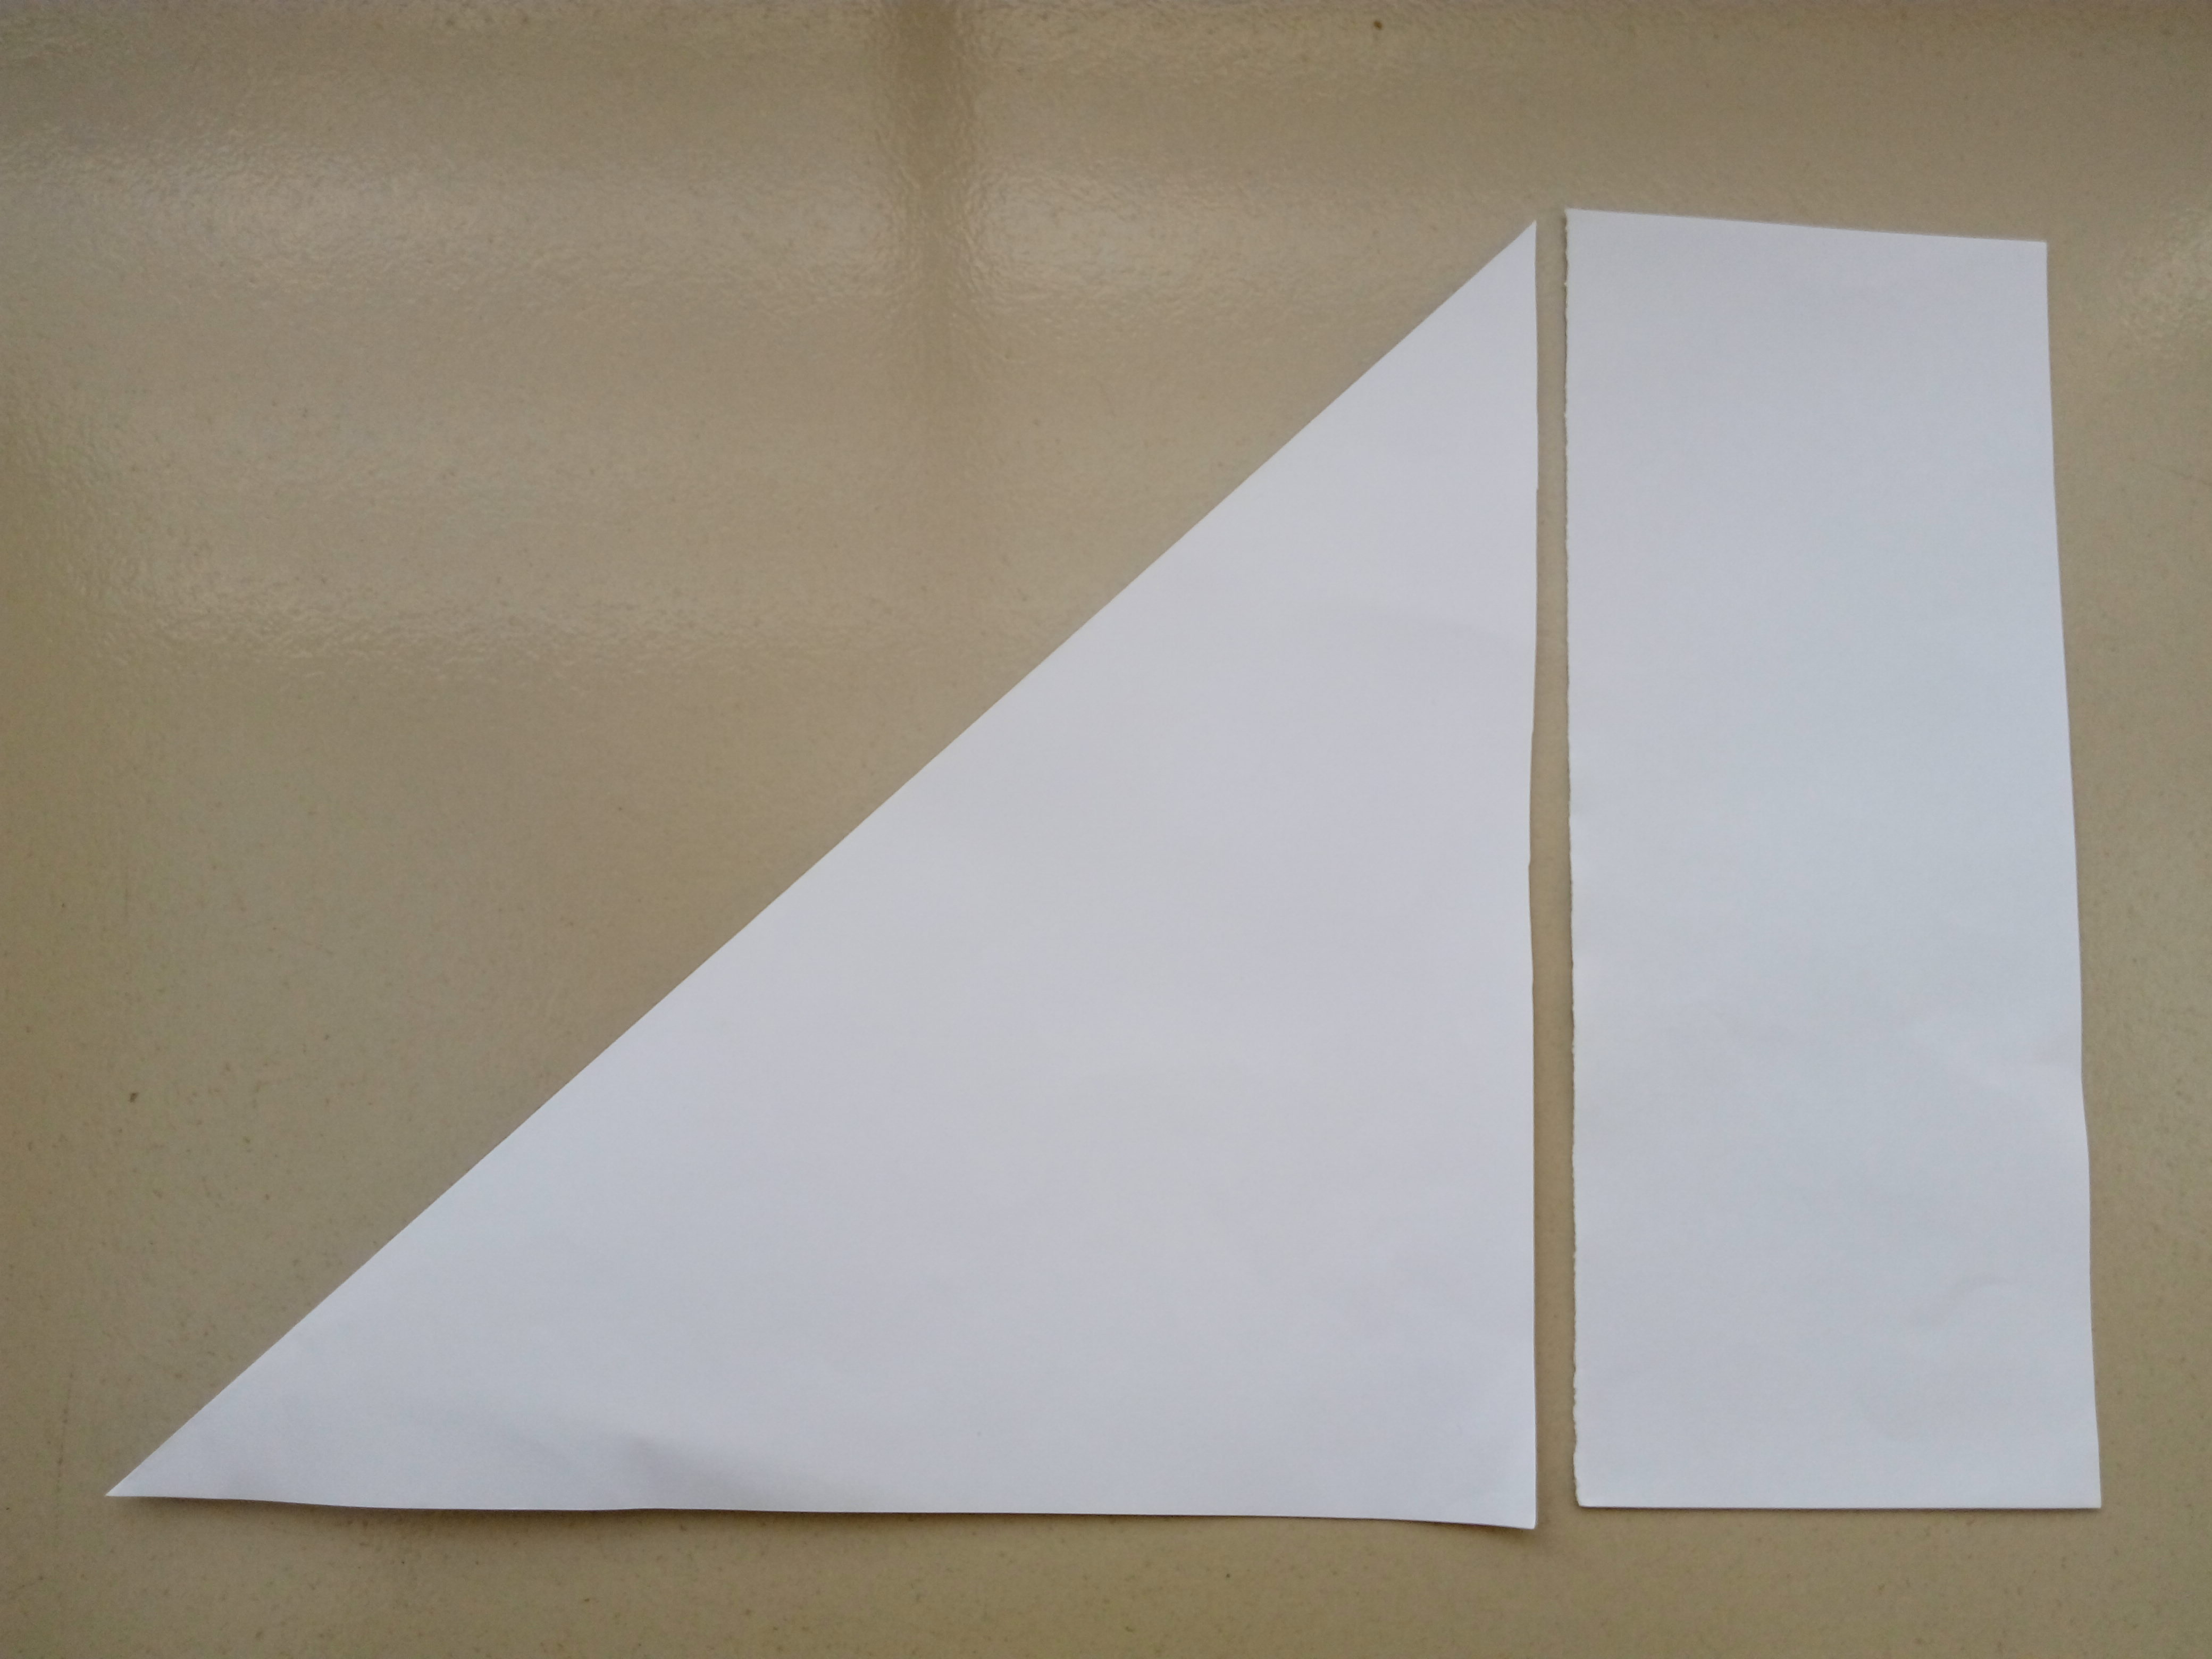 Picture of Begin With a 6-inch X 6 Inch (15 Cm X 15 Cm) Square Sheet of Origami Paper.